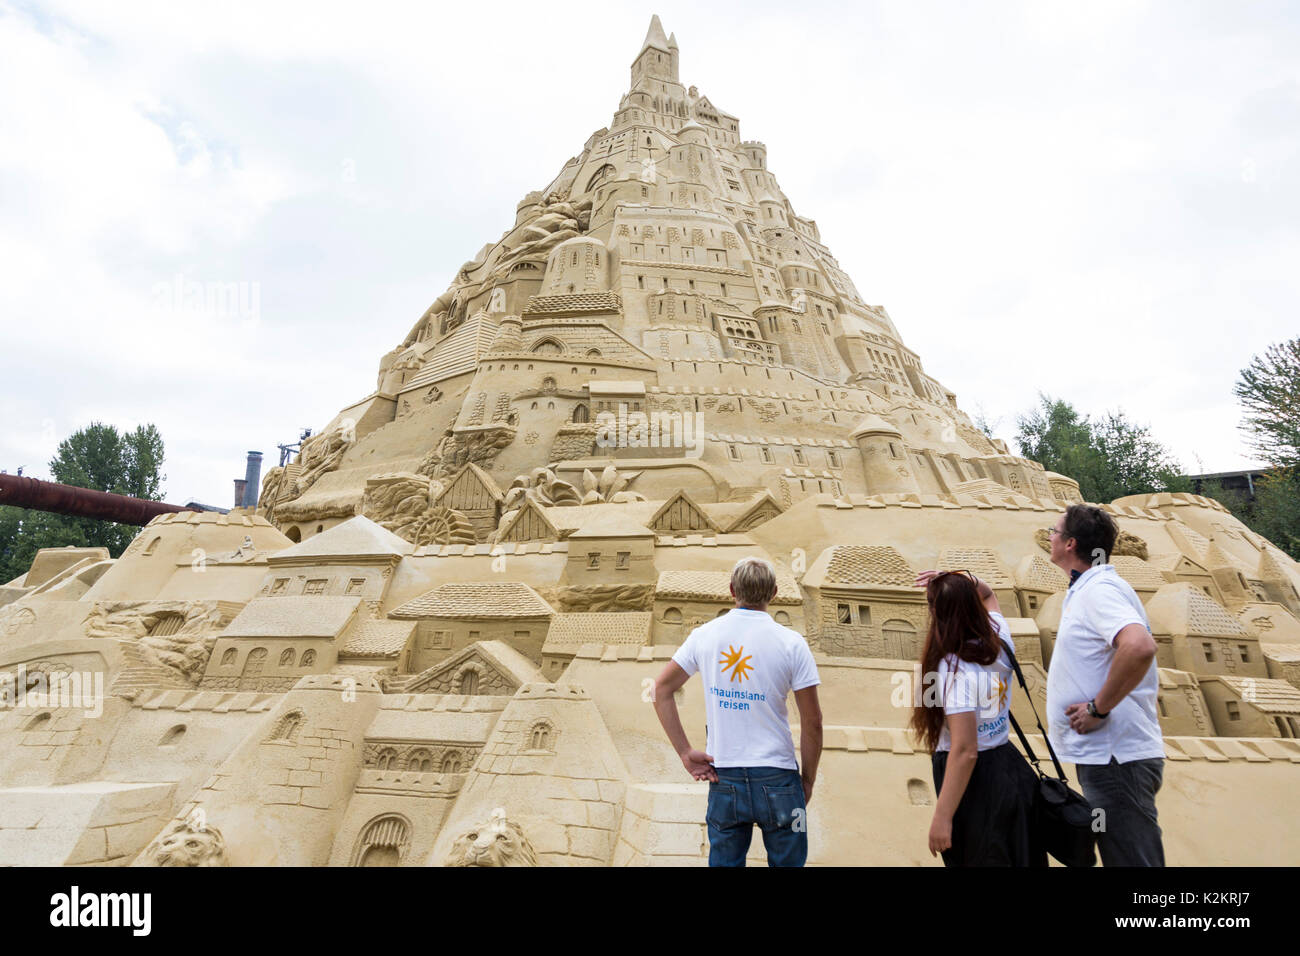 Duisburg, Germany. 1 September 2017. Created by travel company schauinsland-reisen, the record for the tallest sandcastle in the world (16.68m) goes to Duisburg, Germany where 19 sand sculptors had worked on the structure only made of sand for 25 days. Jack Brockbank of Guinness World Records confirmed the record. Photo: Bettina Strenske/Alamy Live News - Stock Image